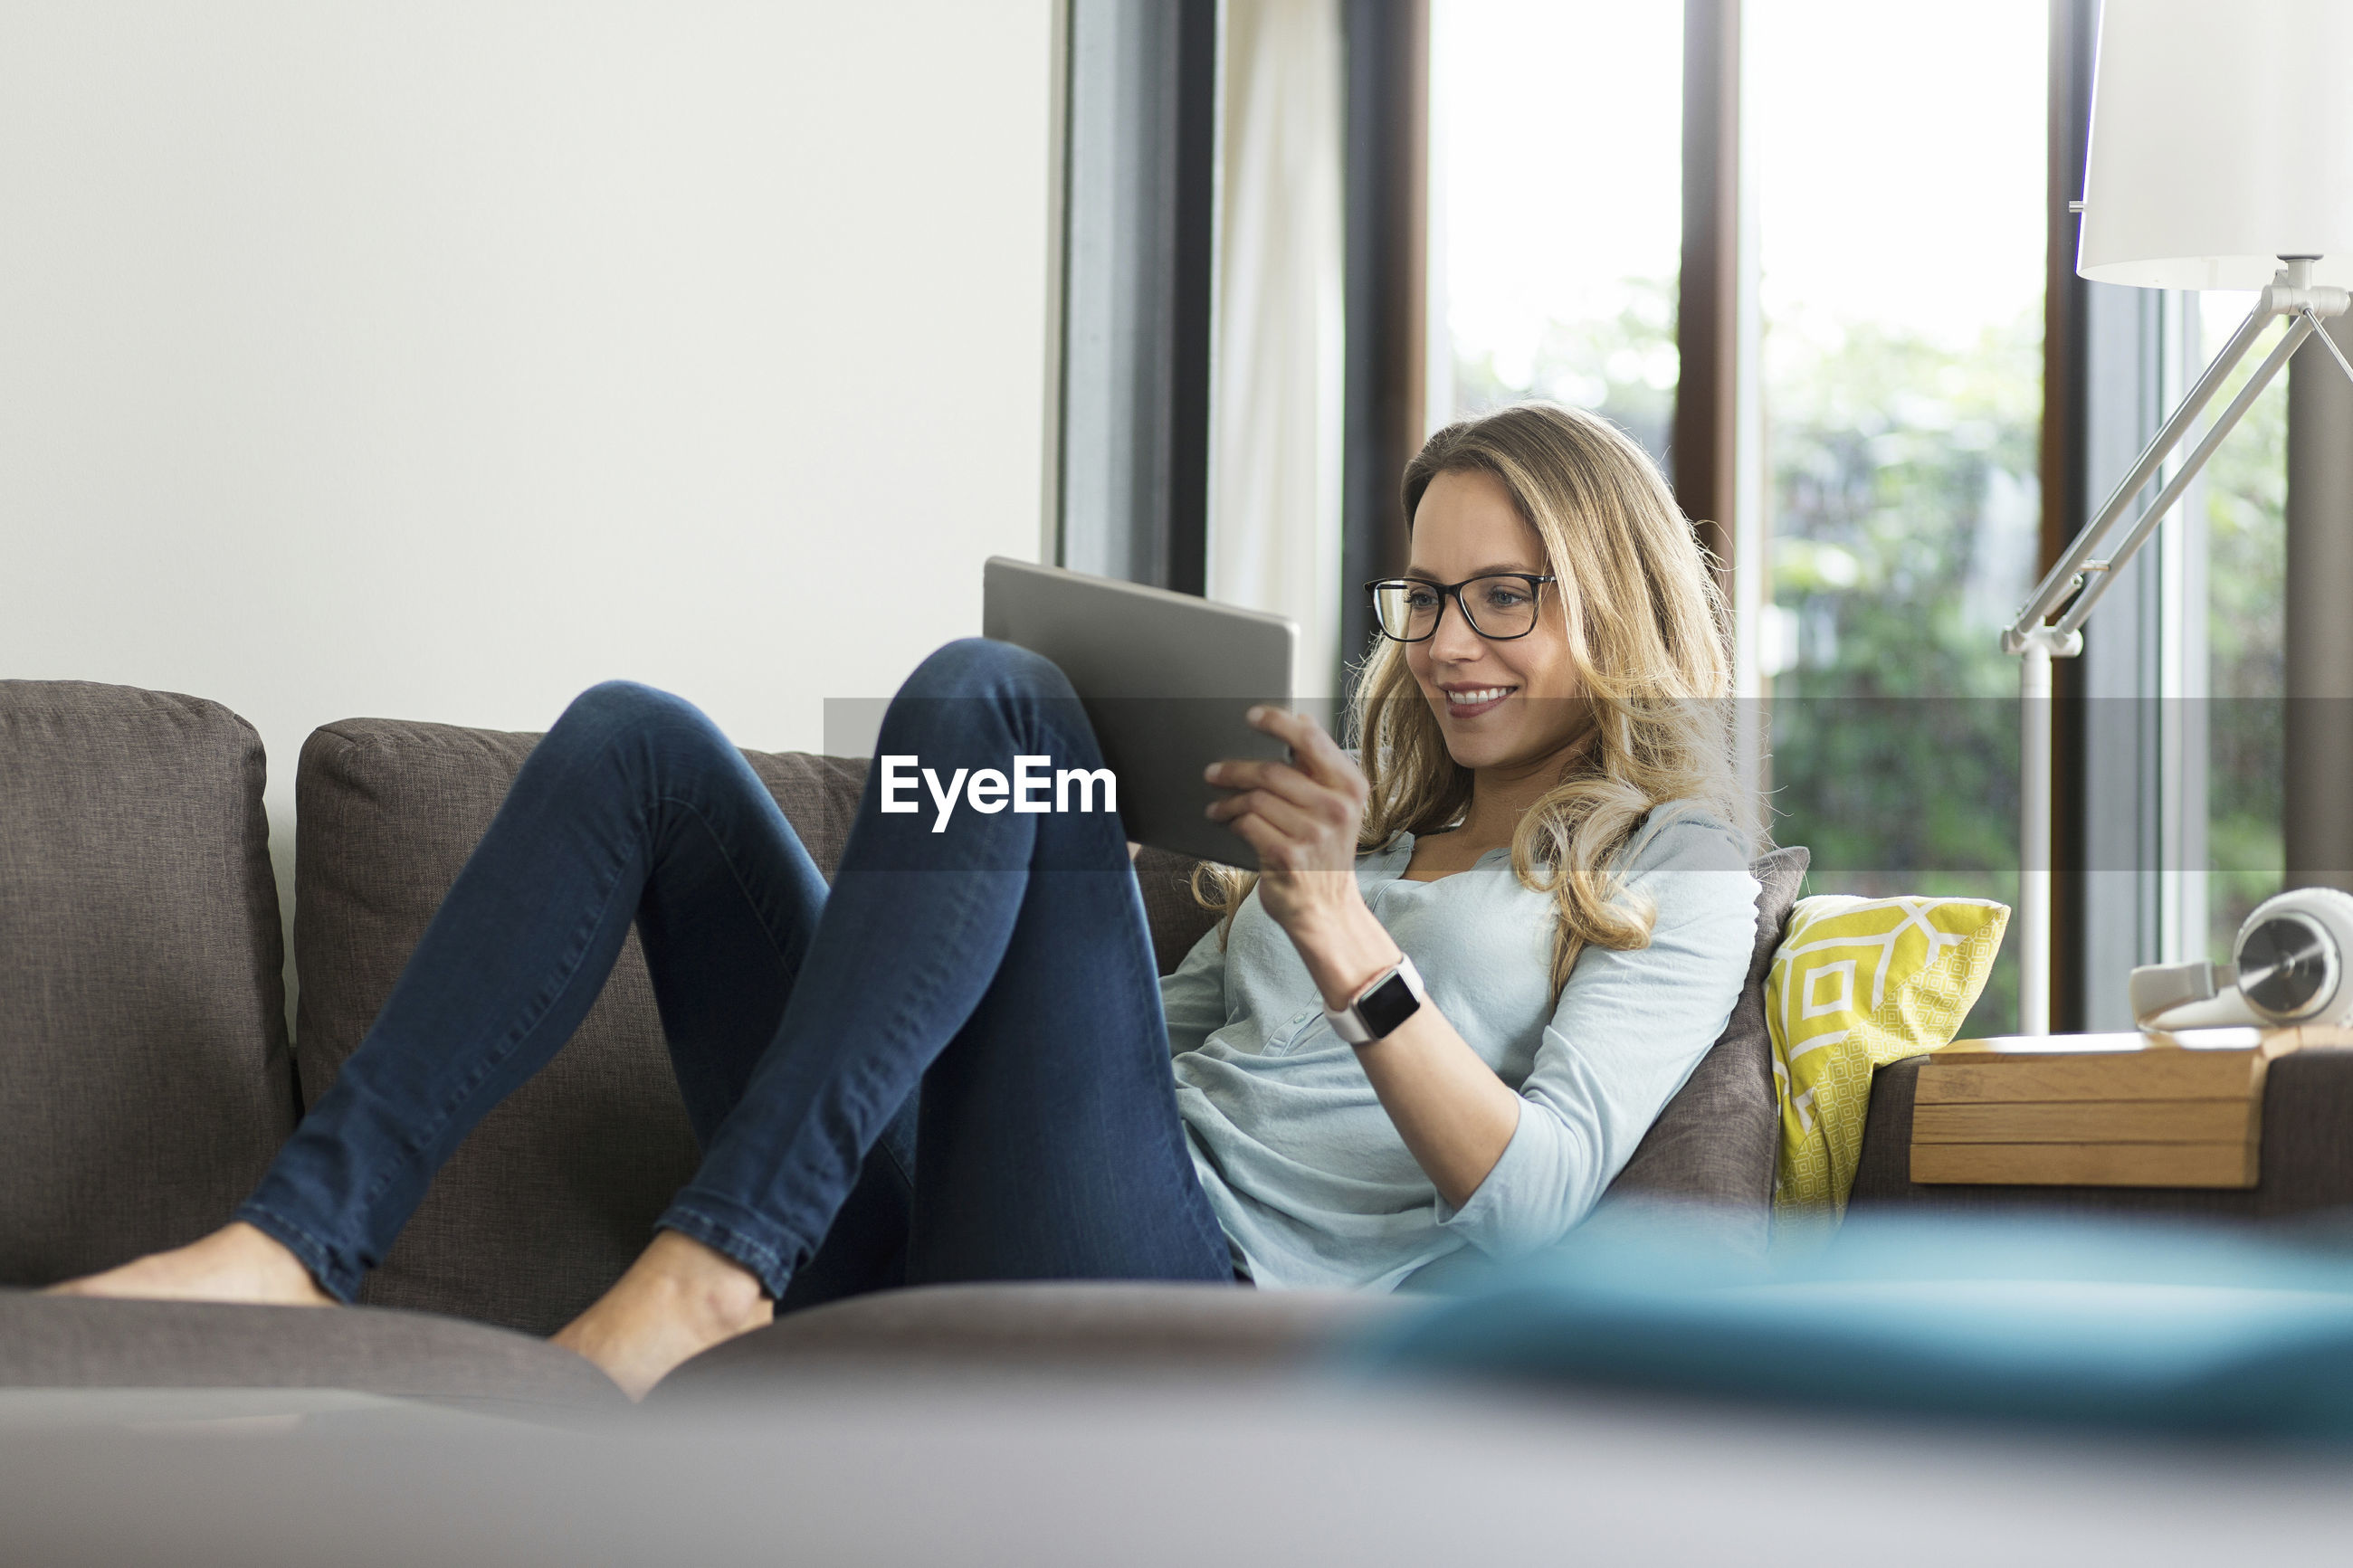 HAPPY YOUNG WOMAN USING PHONE WHILE SITTING ON SOFA AT HOME